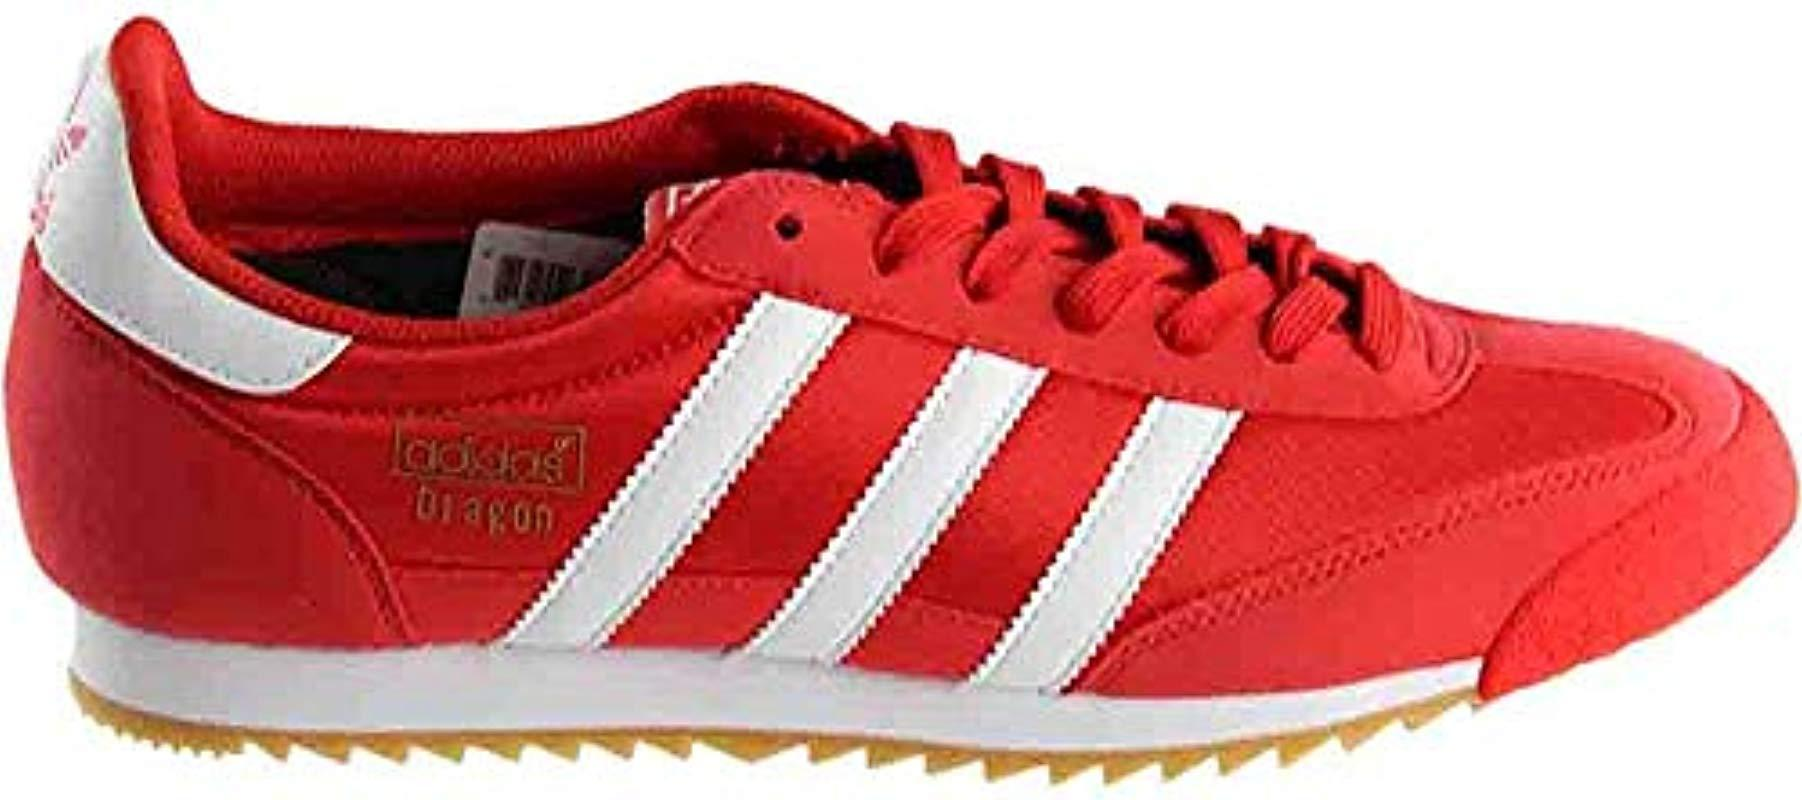 adidas red dragon trainers